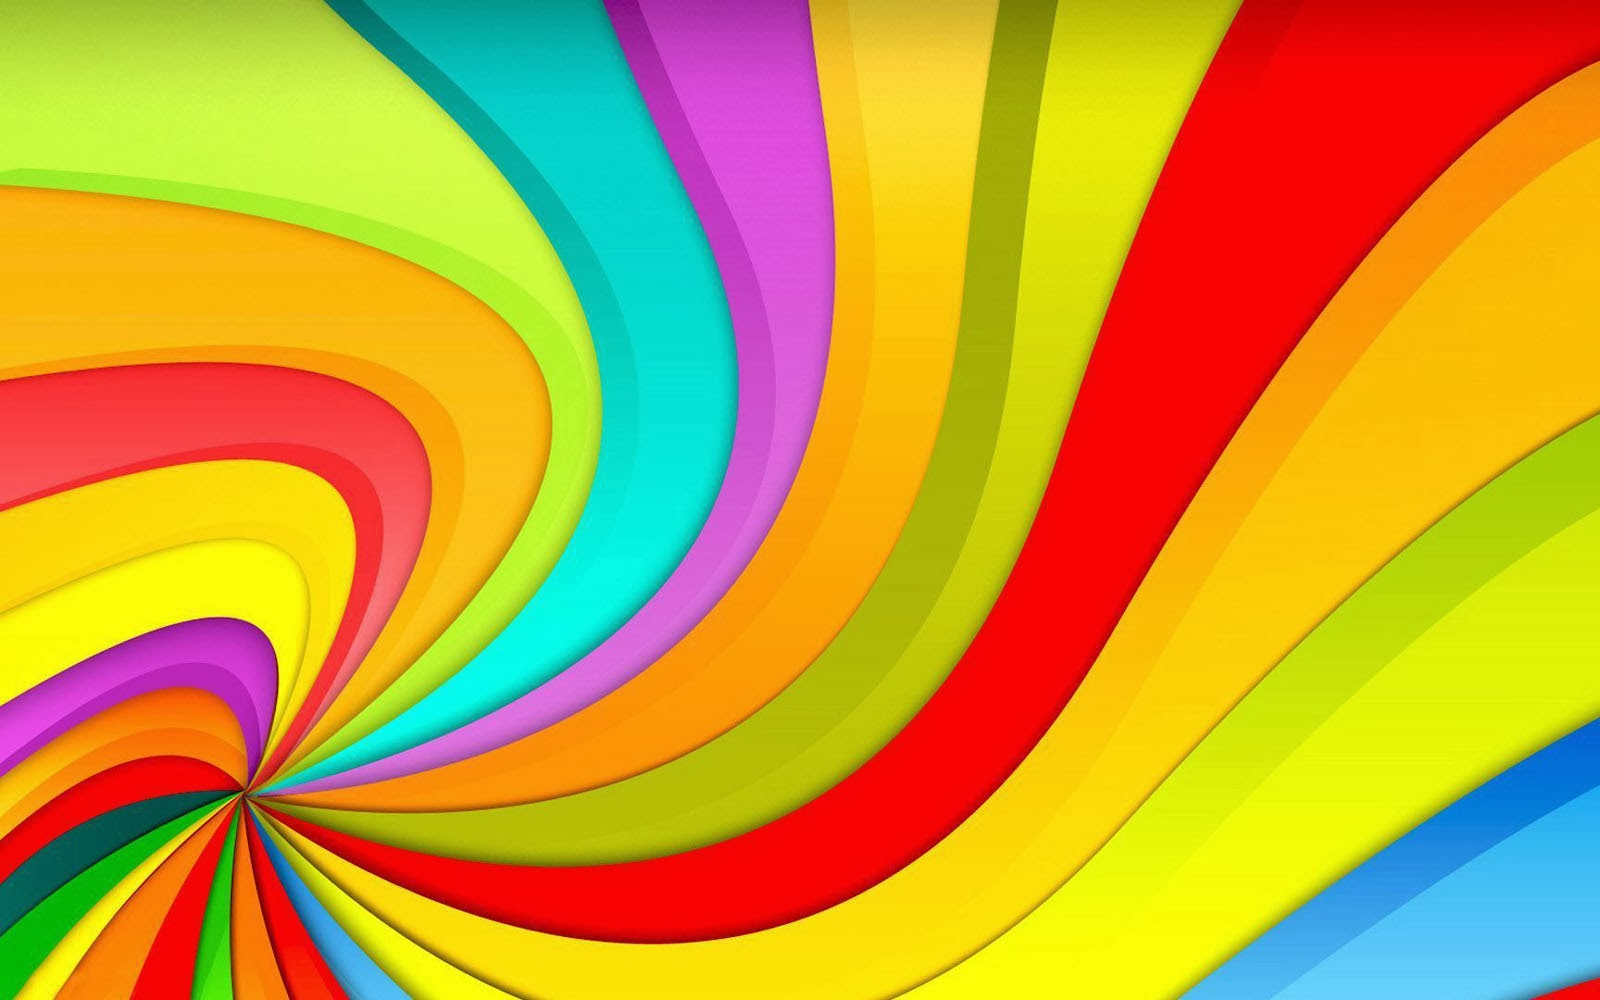 Http Wallpapers Xs Blogspot Com 2013 12 Colorful Swirls Wallpapers Html